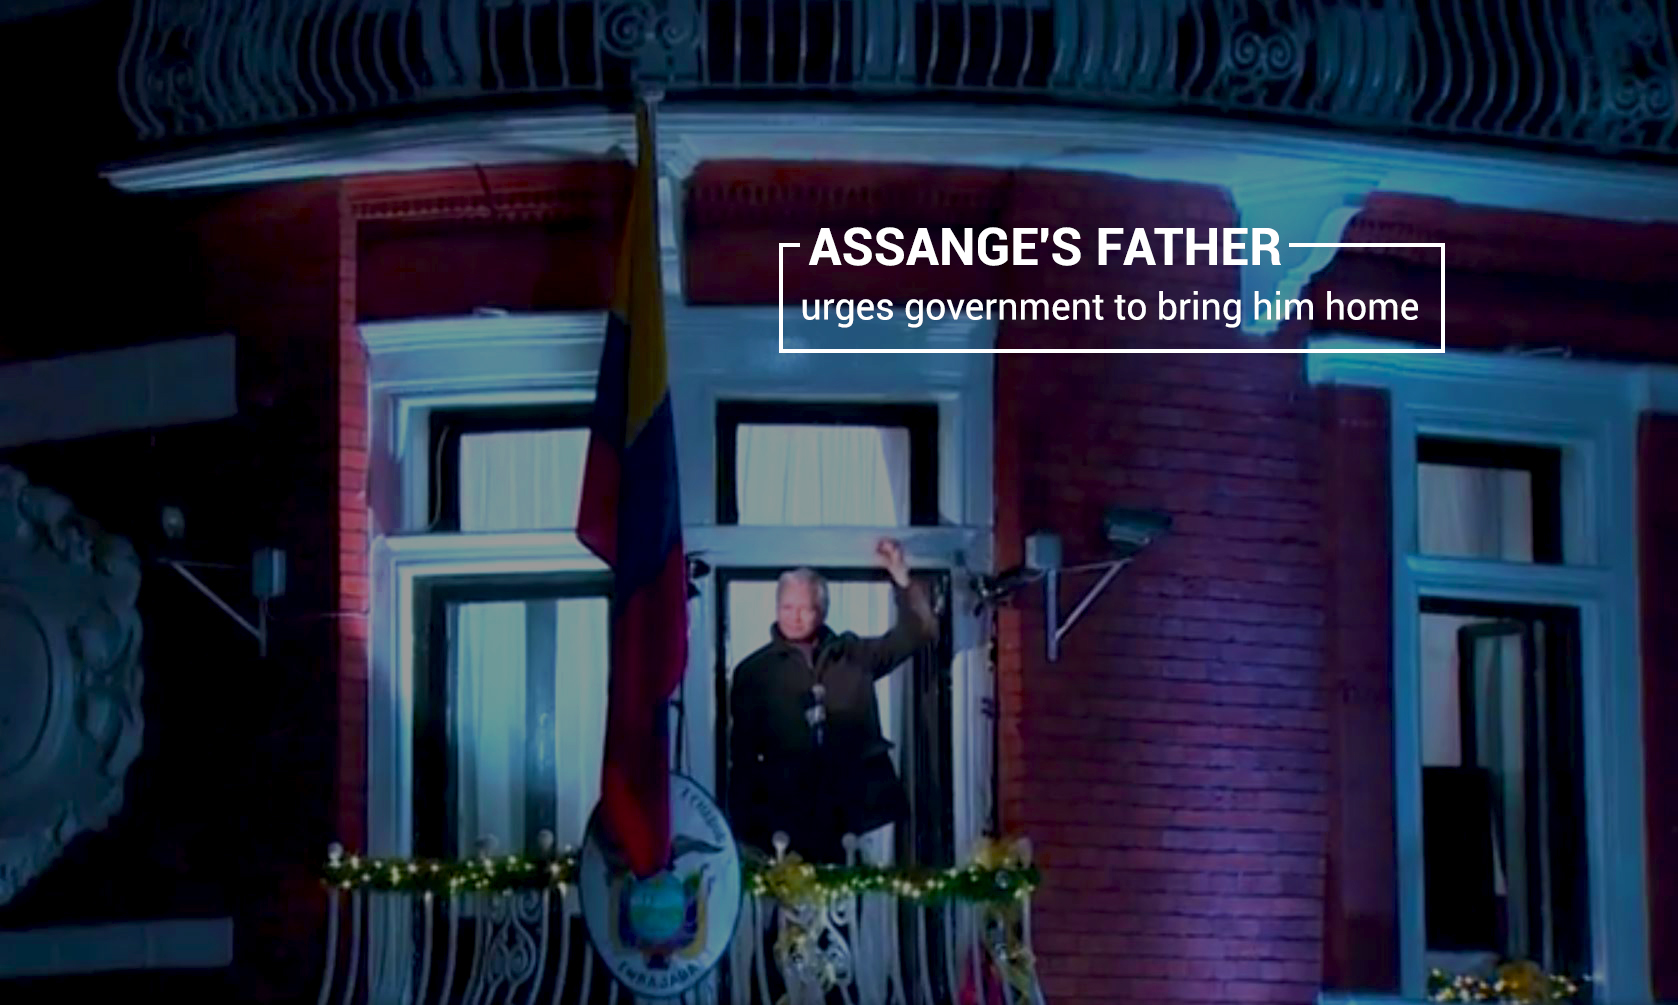 Father of Assange Emphasizes Govt. of Australia to Bring his Son Home